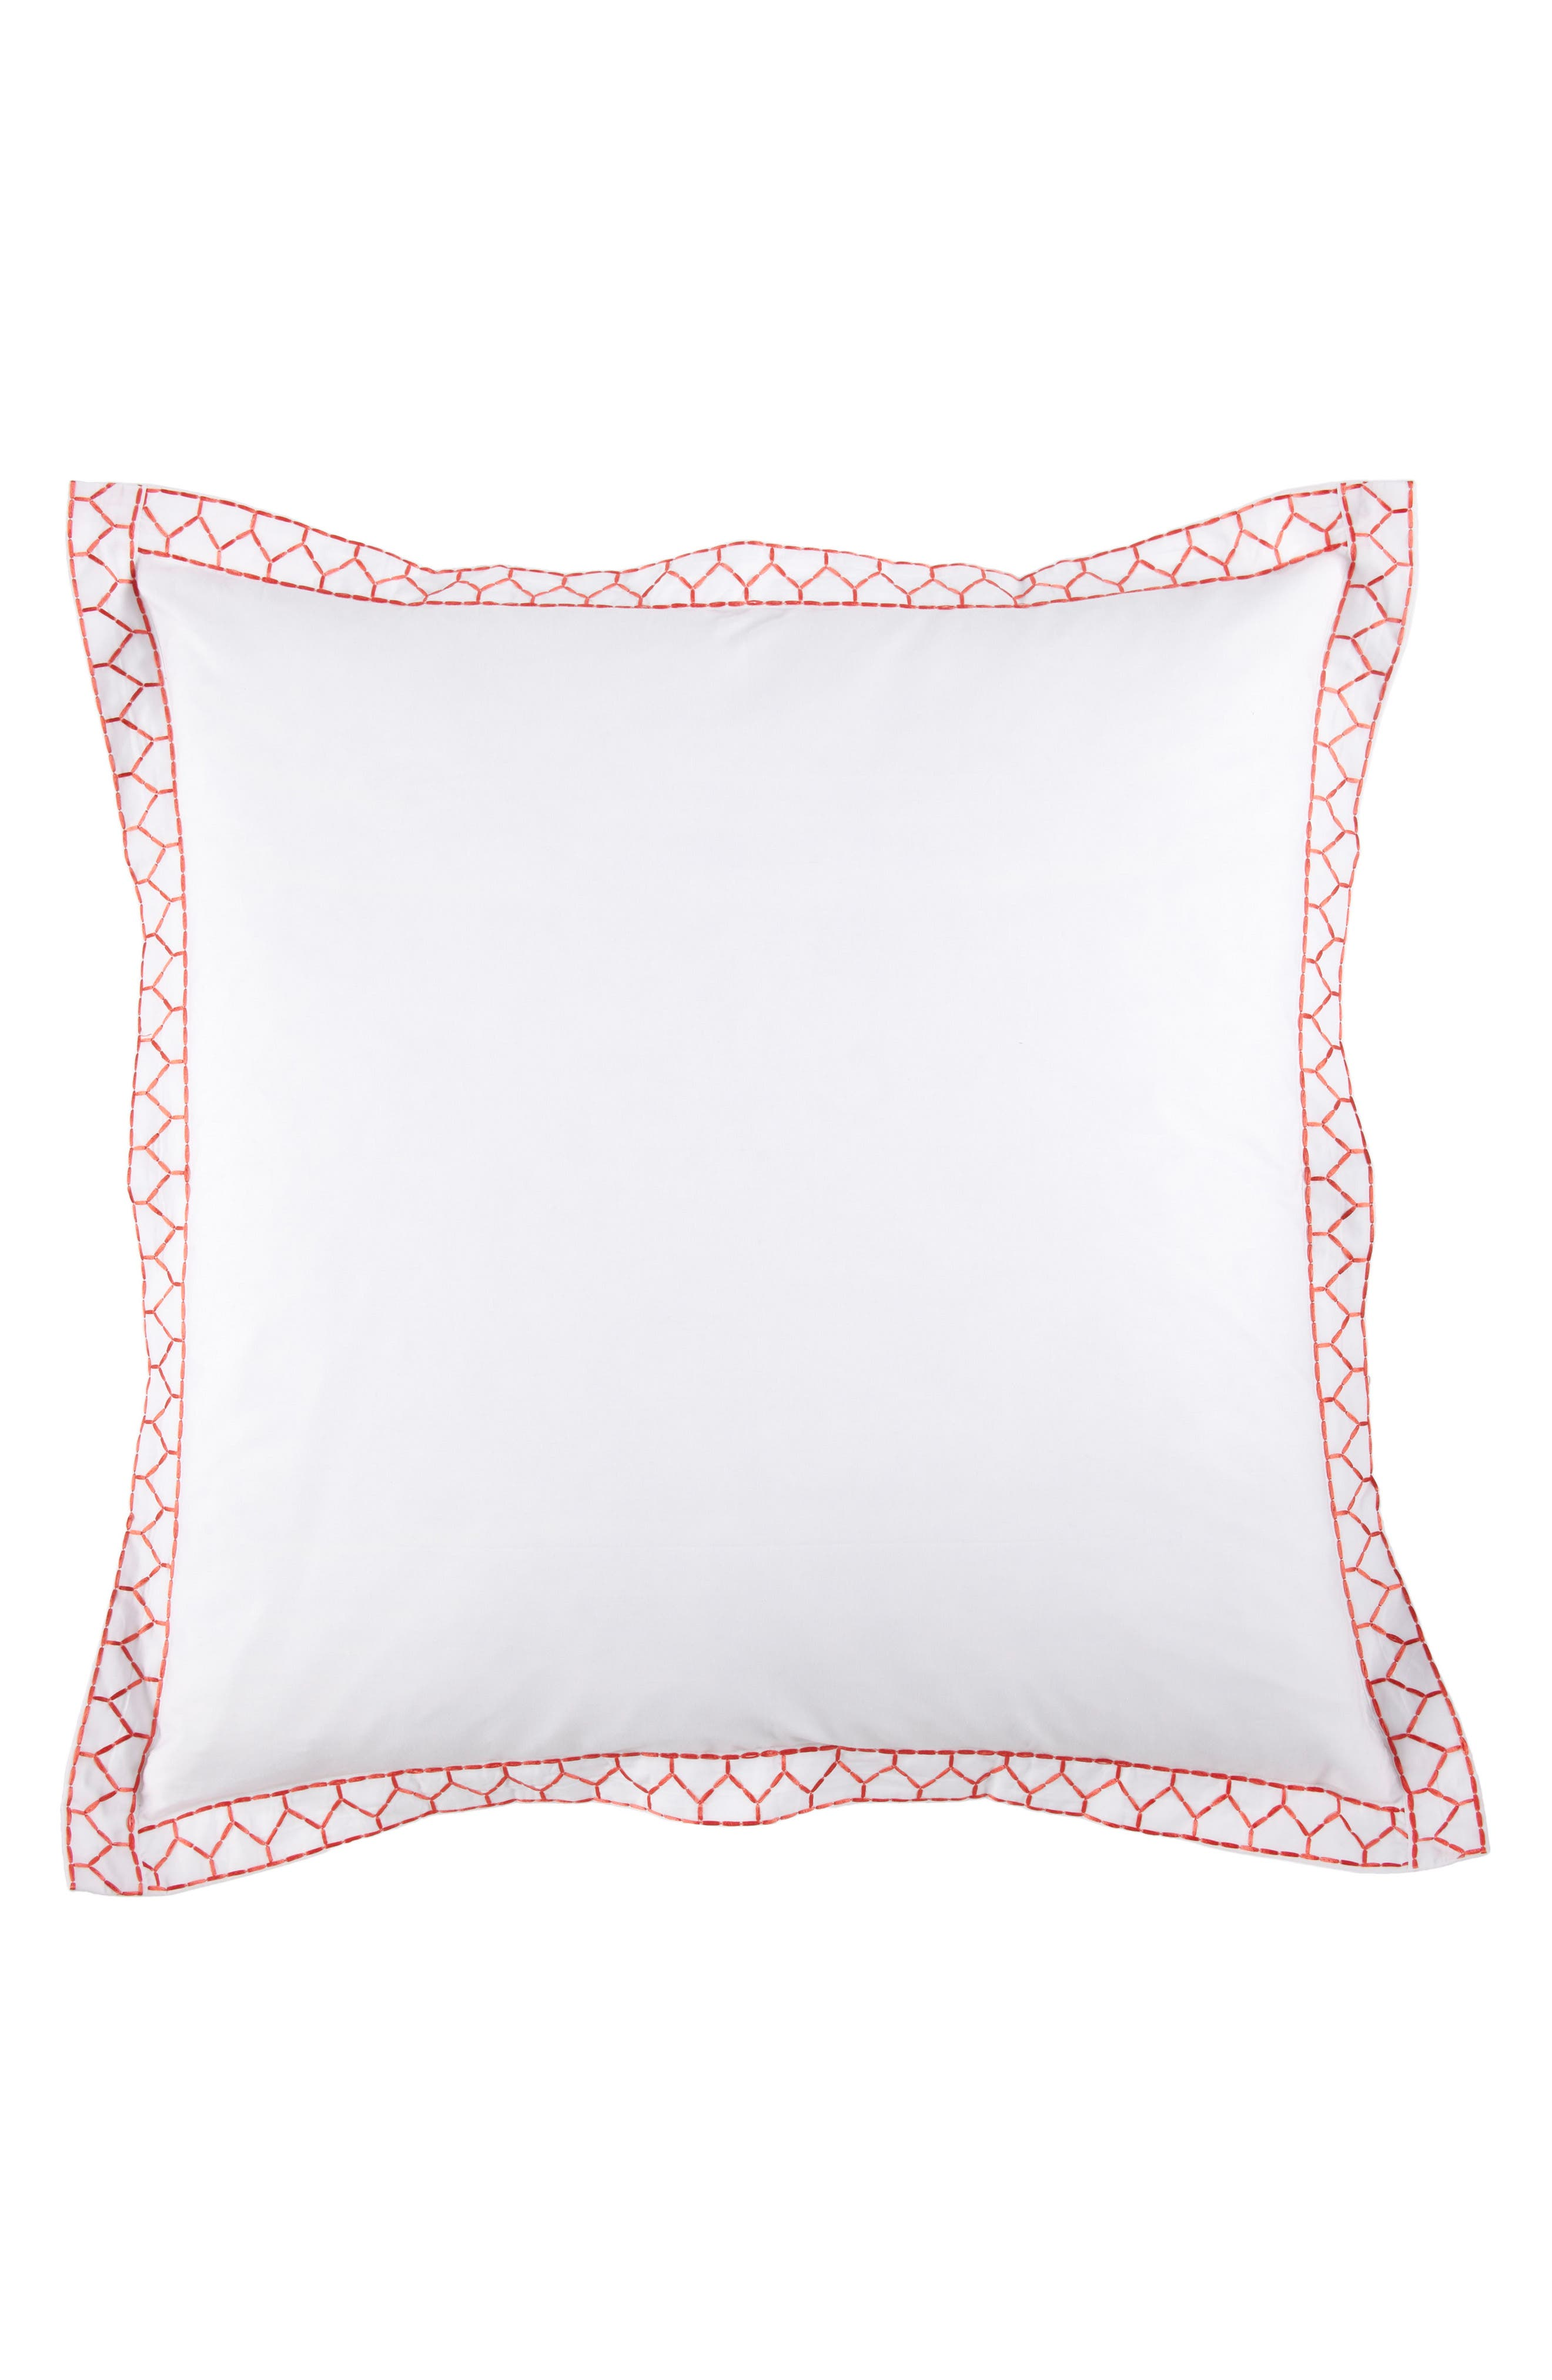 Stitched Border Euro Sham,                             Main thumbnail 1, color,                             Coral/ White